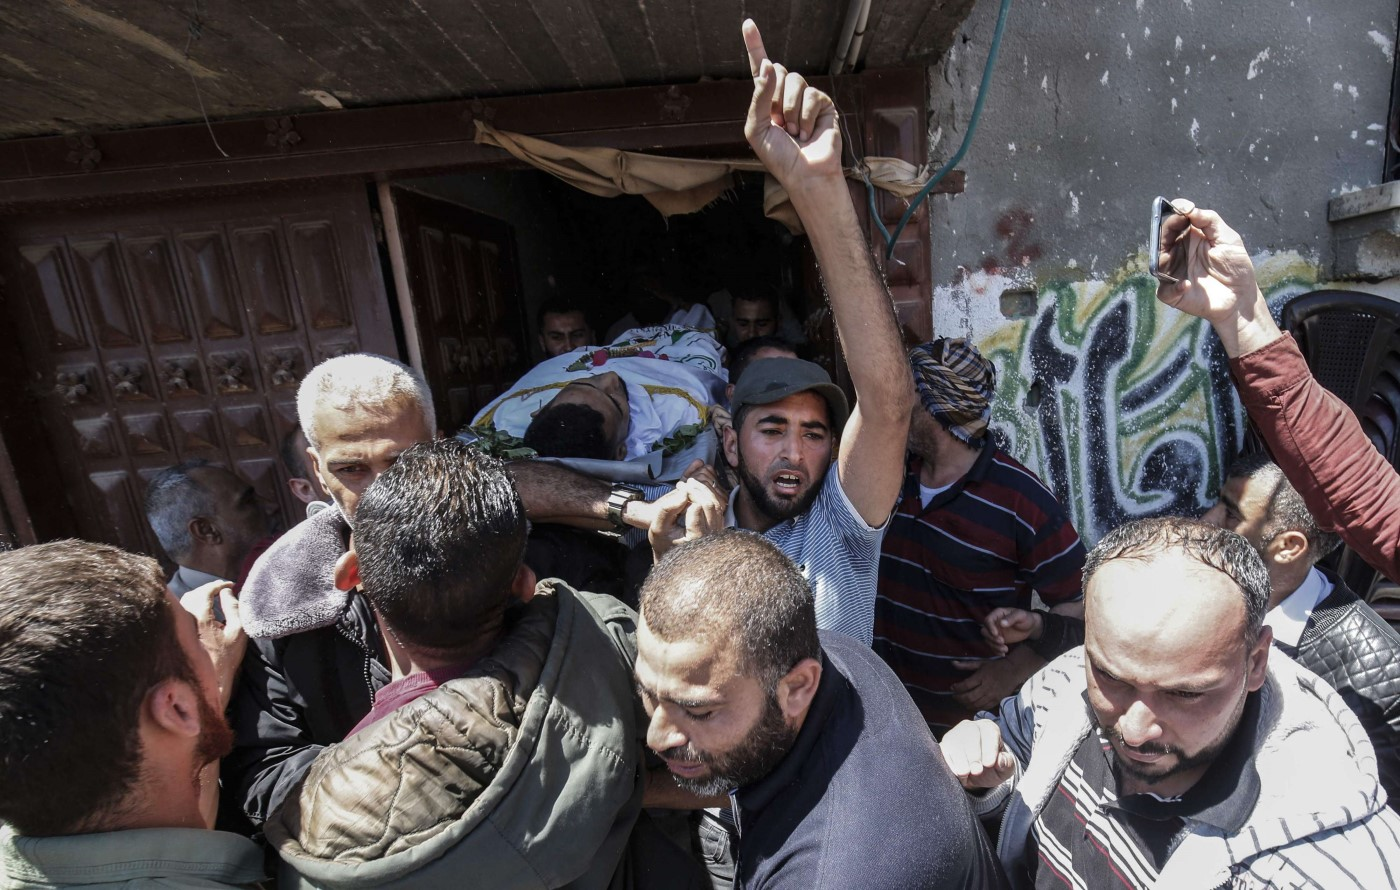 Palestinian mourners carry the body of Abdullah Abd al-Aal, during his funeral in Rafah in the southern Gaza Strip on May 11, 2019. (AFP)